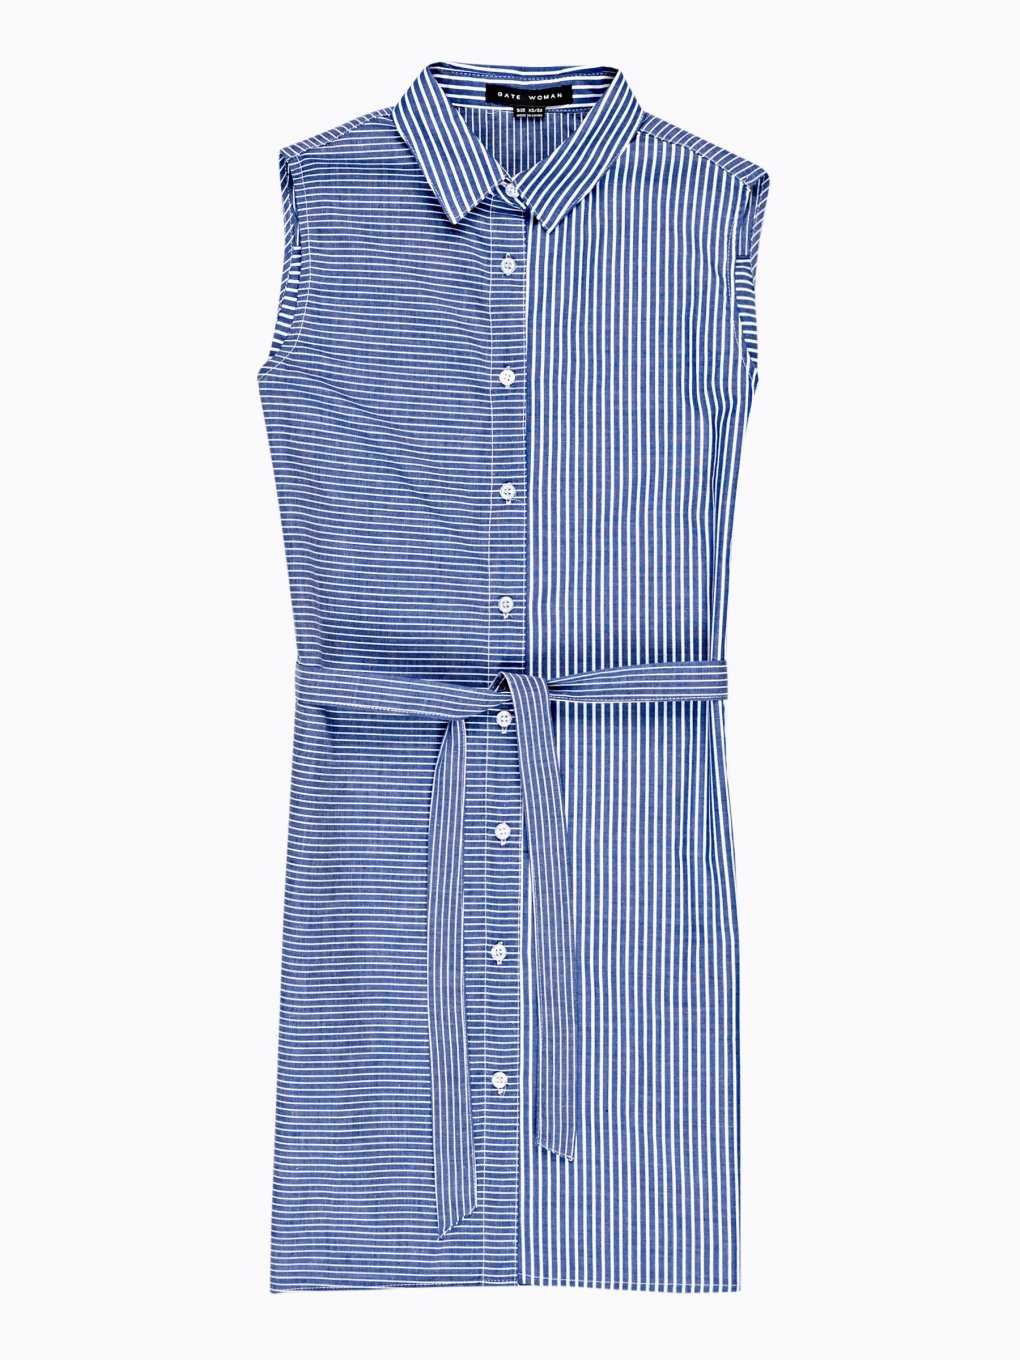 LONGLINE STRIPED SLEEVELESS SHIRT WITH BELT